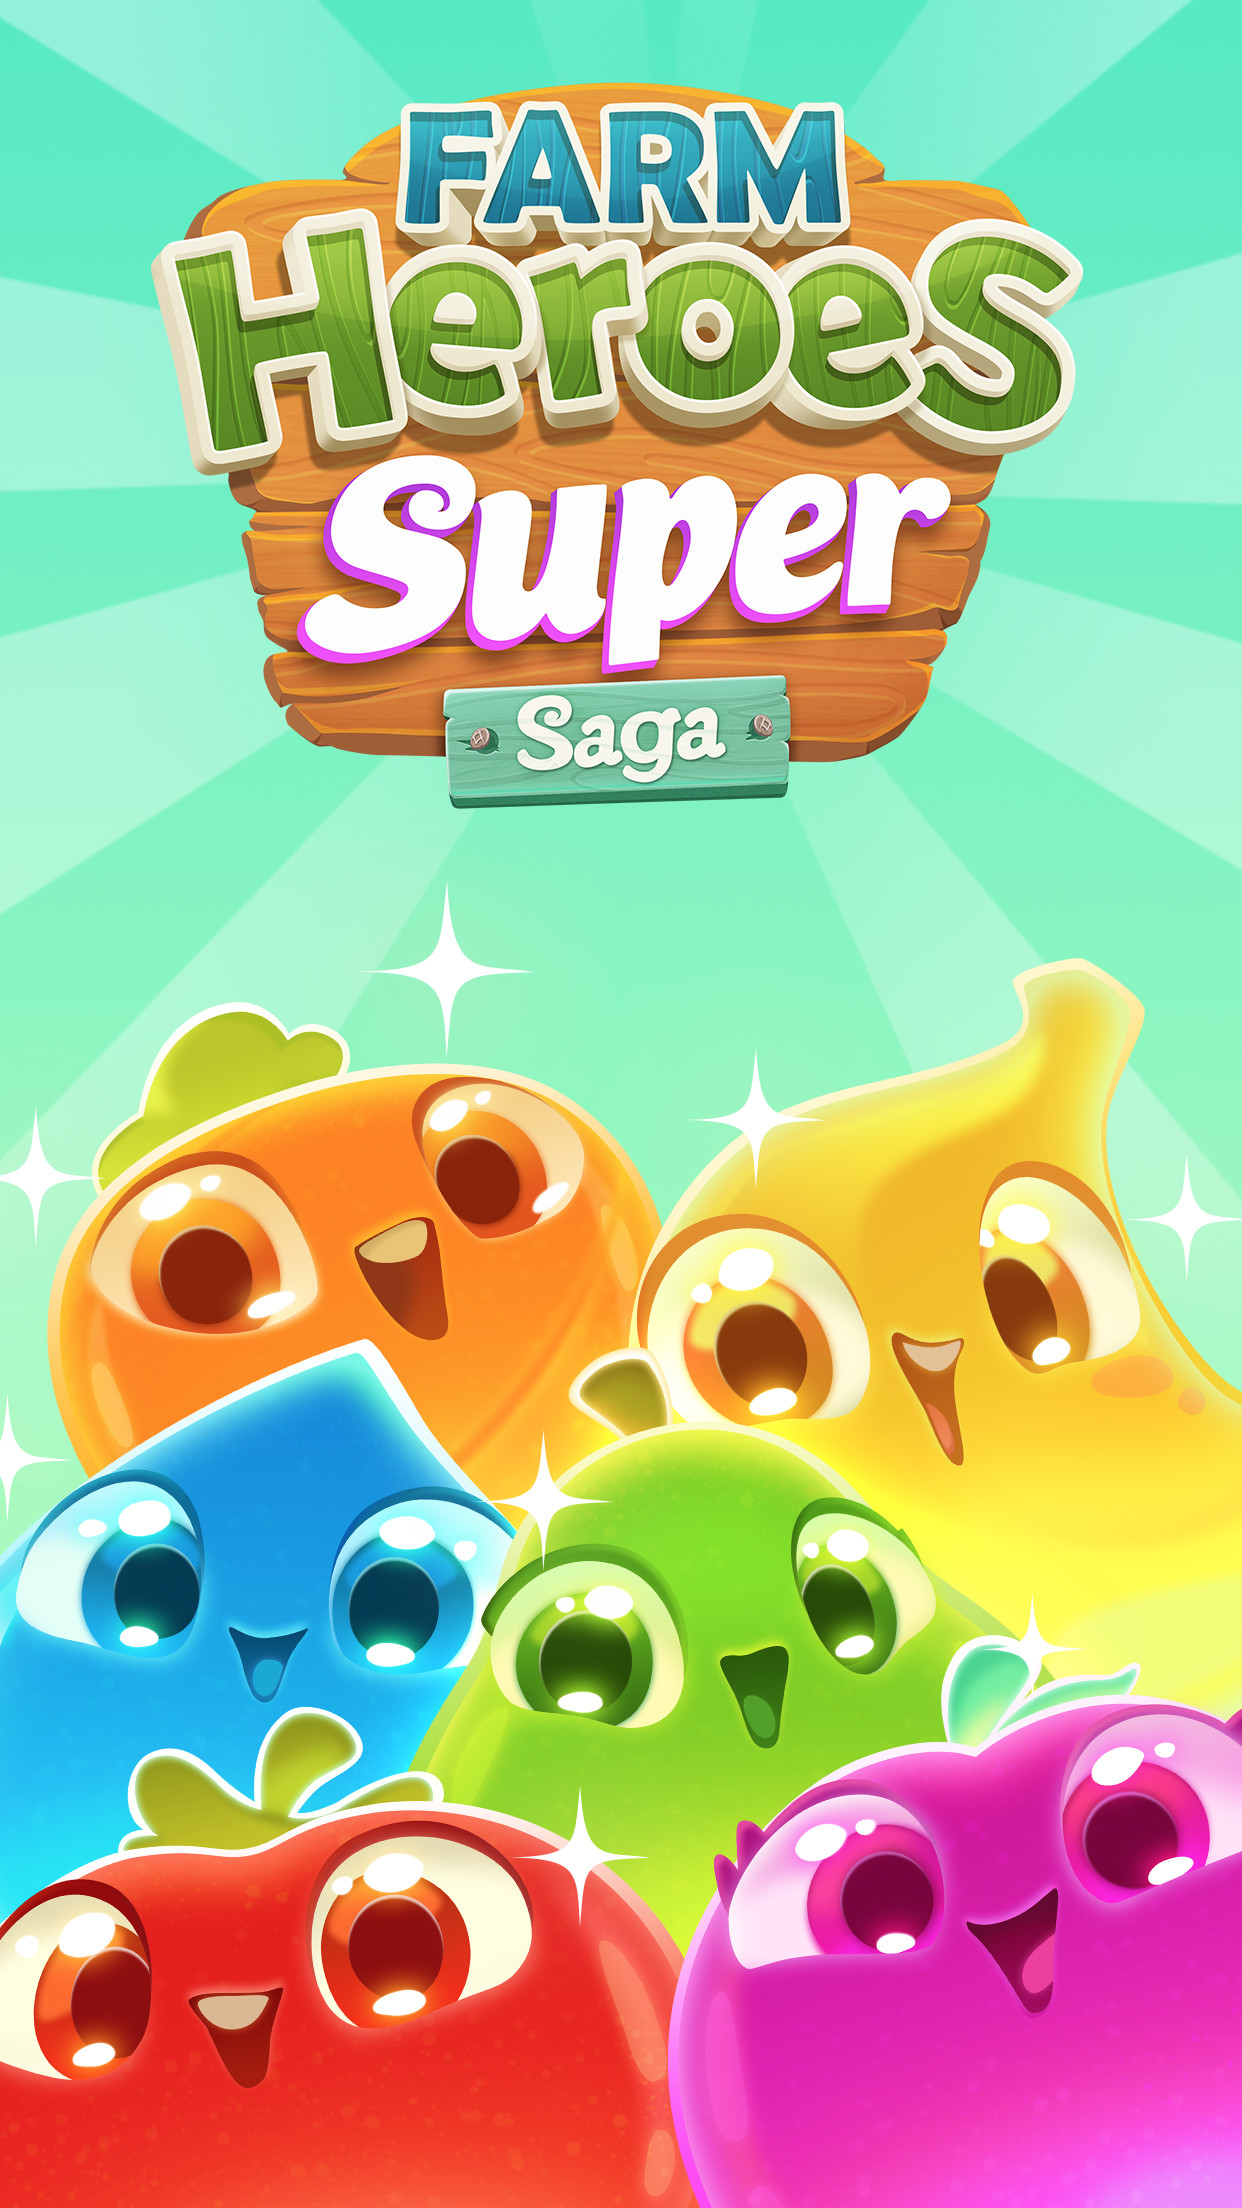 King's Farm Heroes Super Saga is back for more sliding and matching, available now